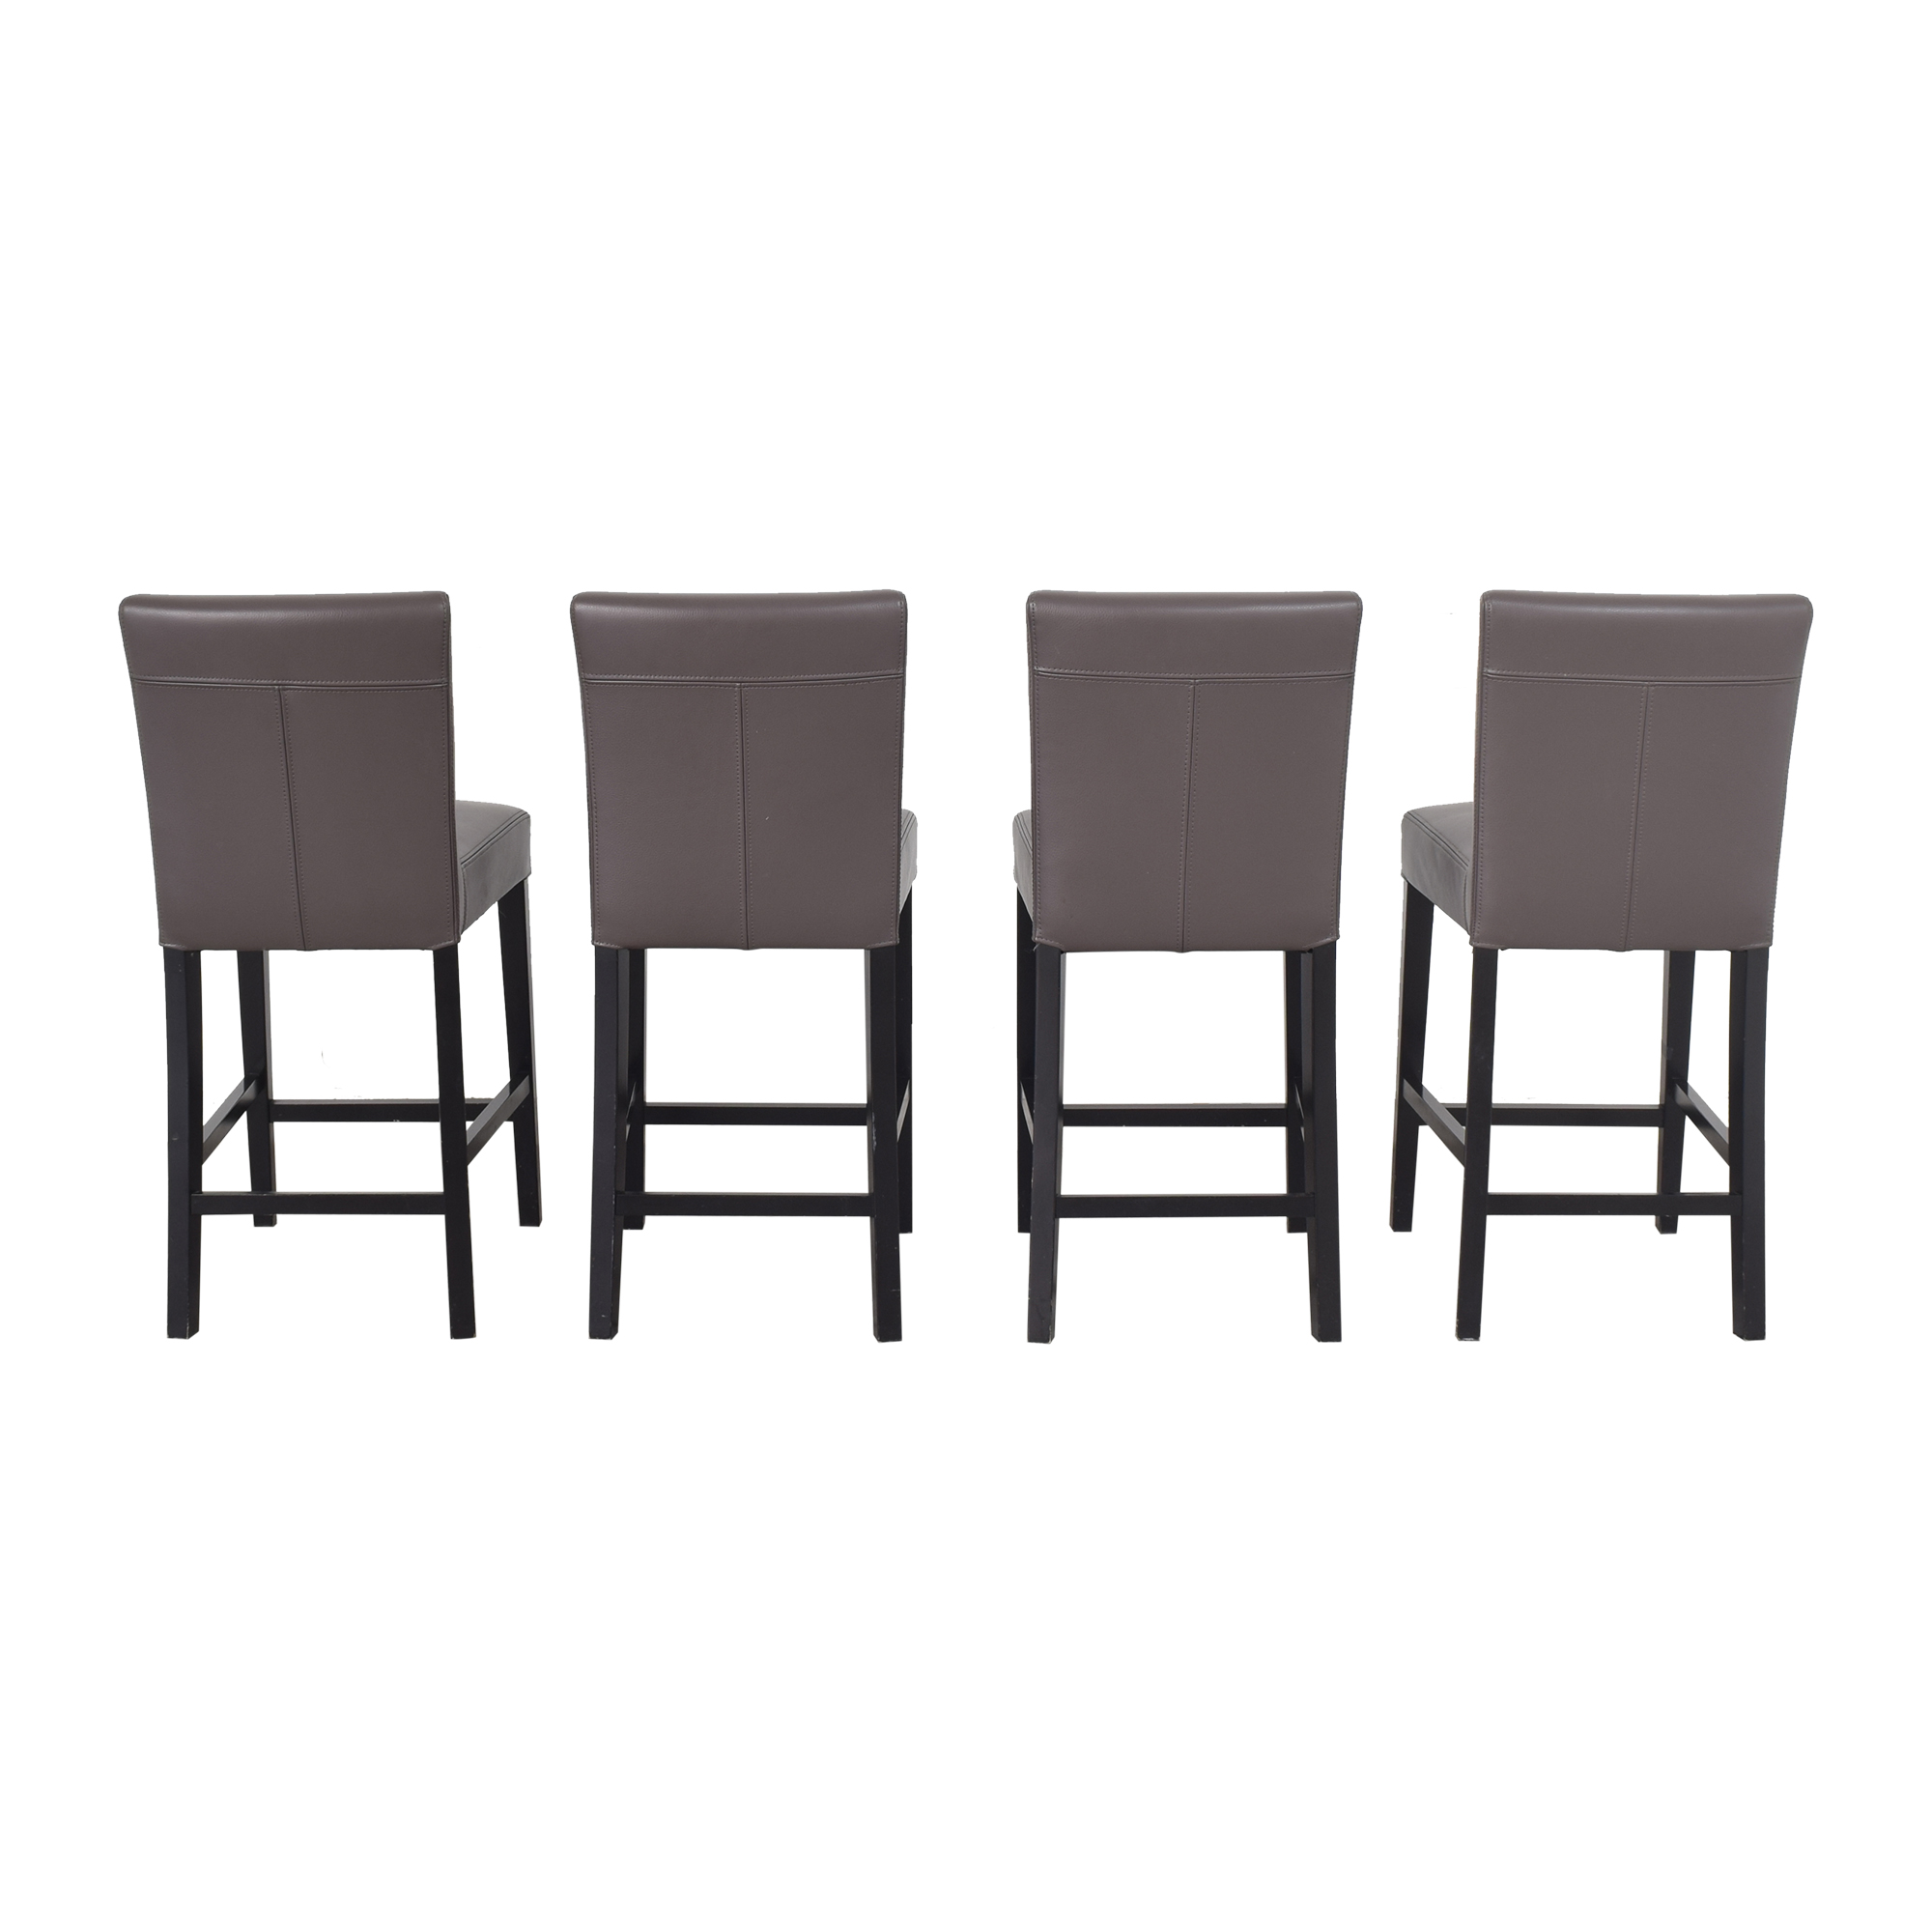 Crate & Barrel Crate & Barrel Lowe Counter Stools dimensions